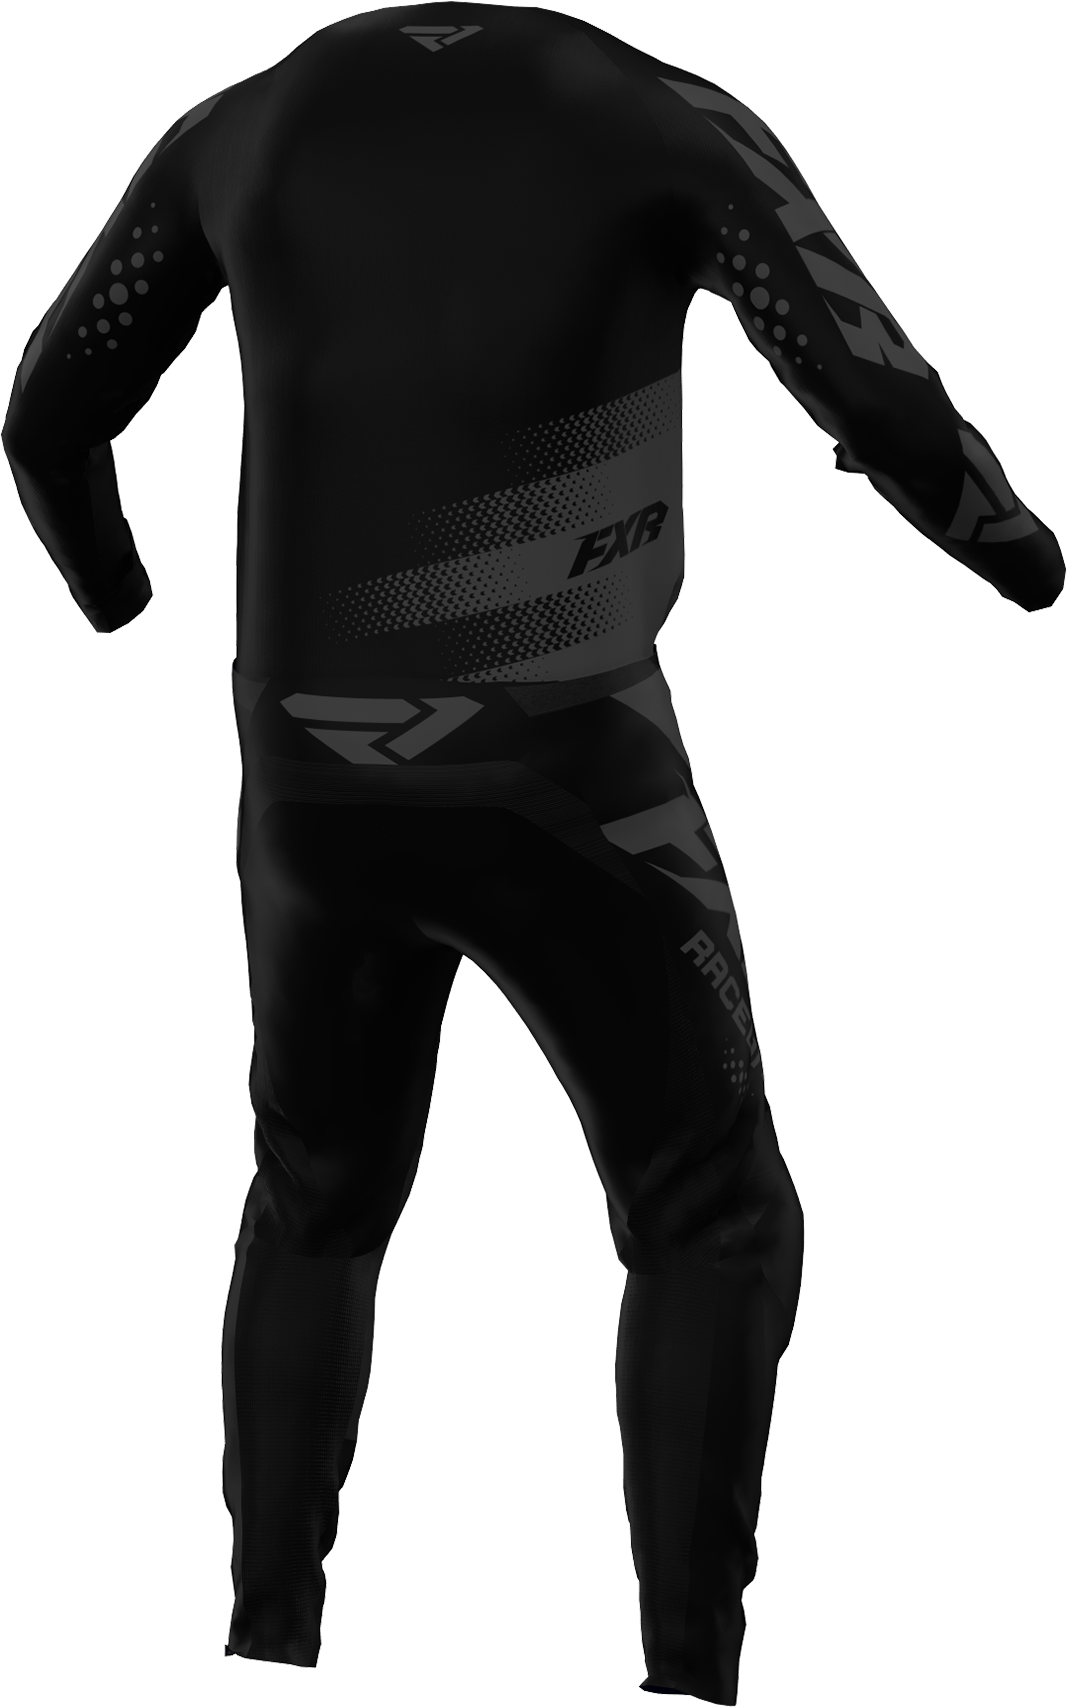 A 3D image of FXR's Clutch MX Jersey and Pant 22 in Black Ops colorway